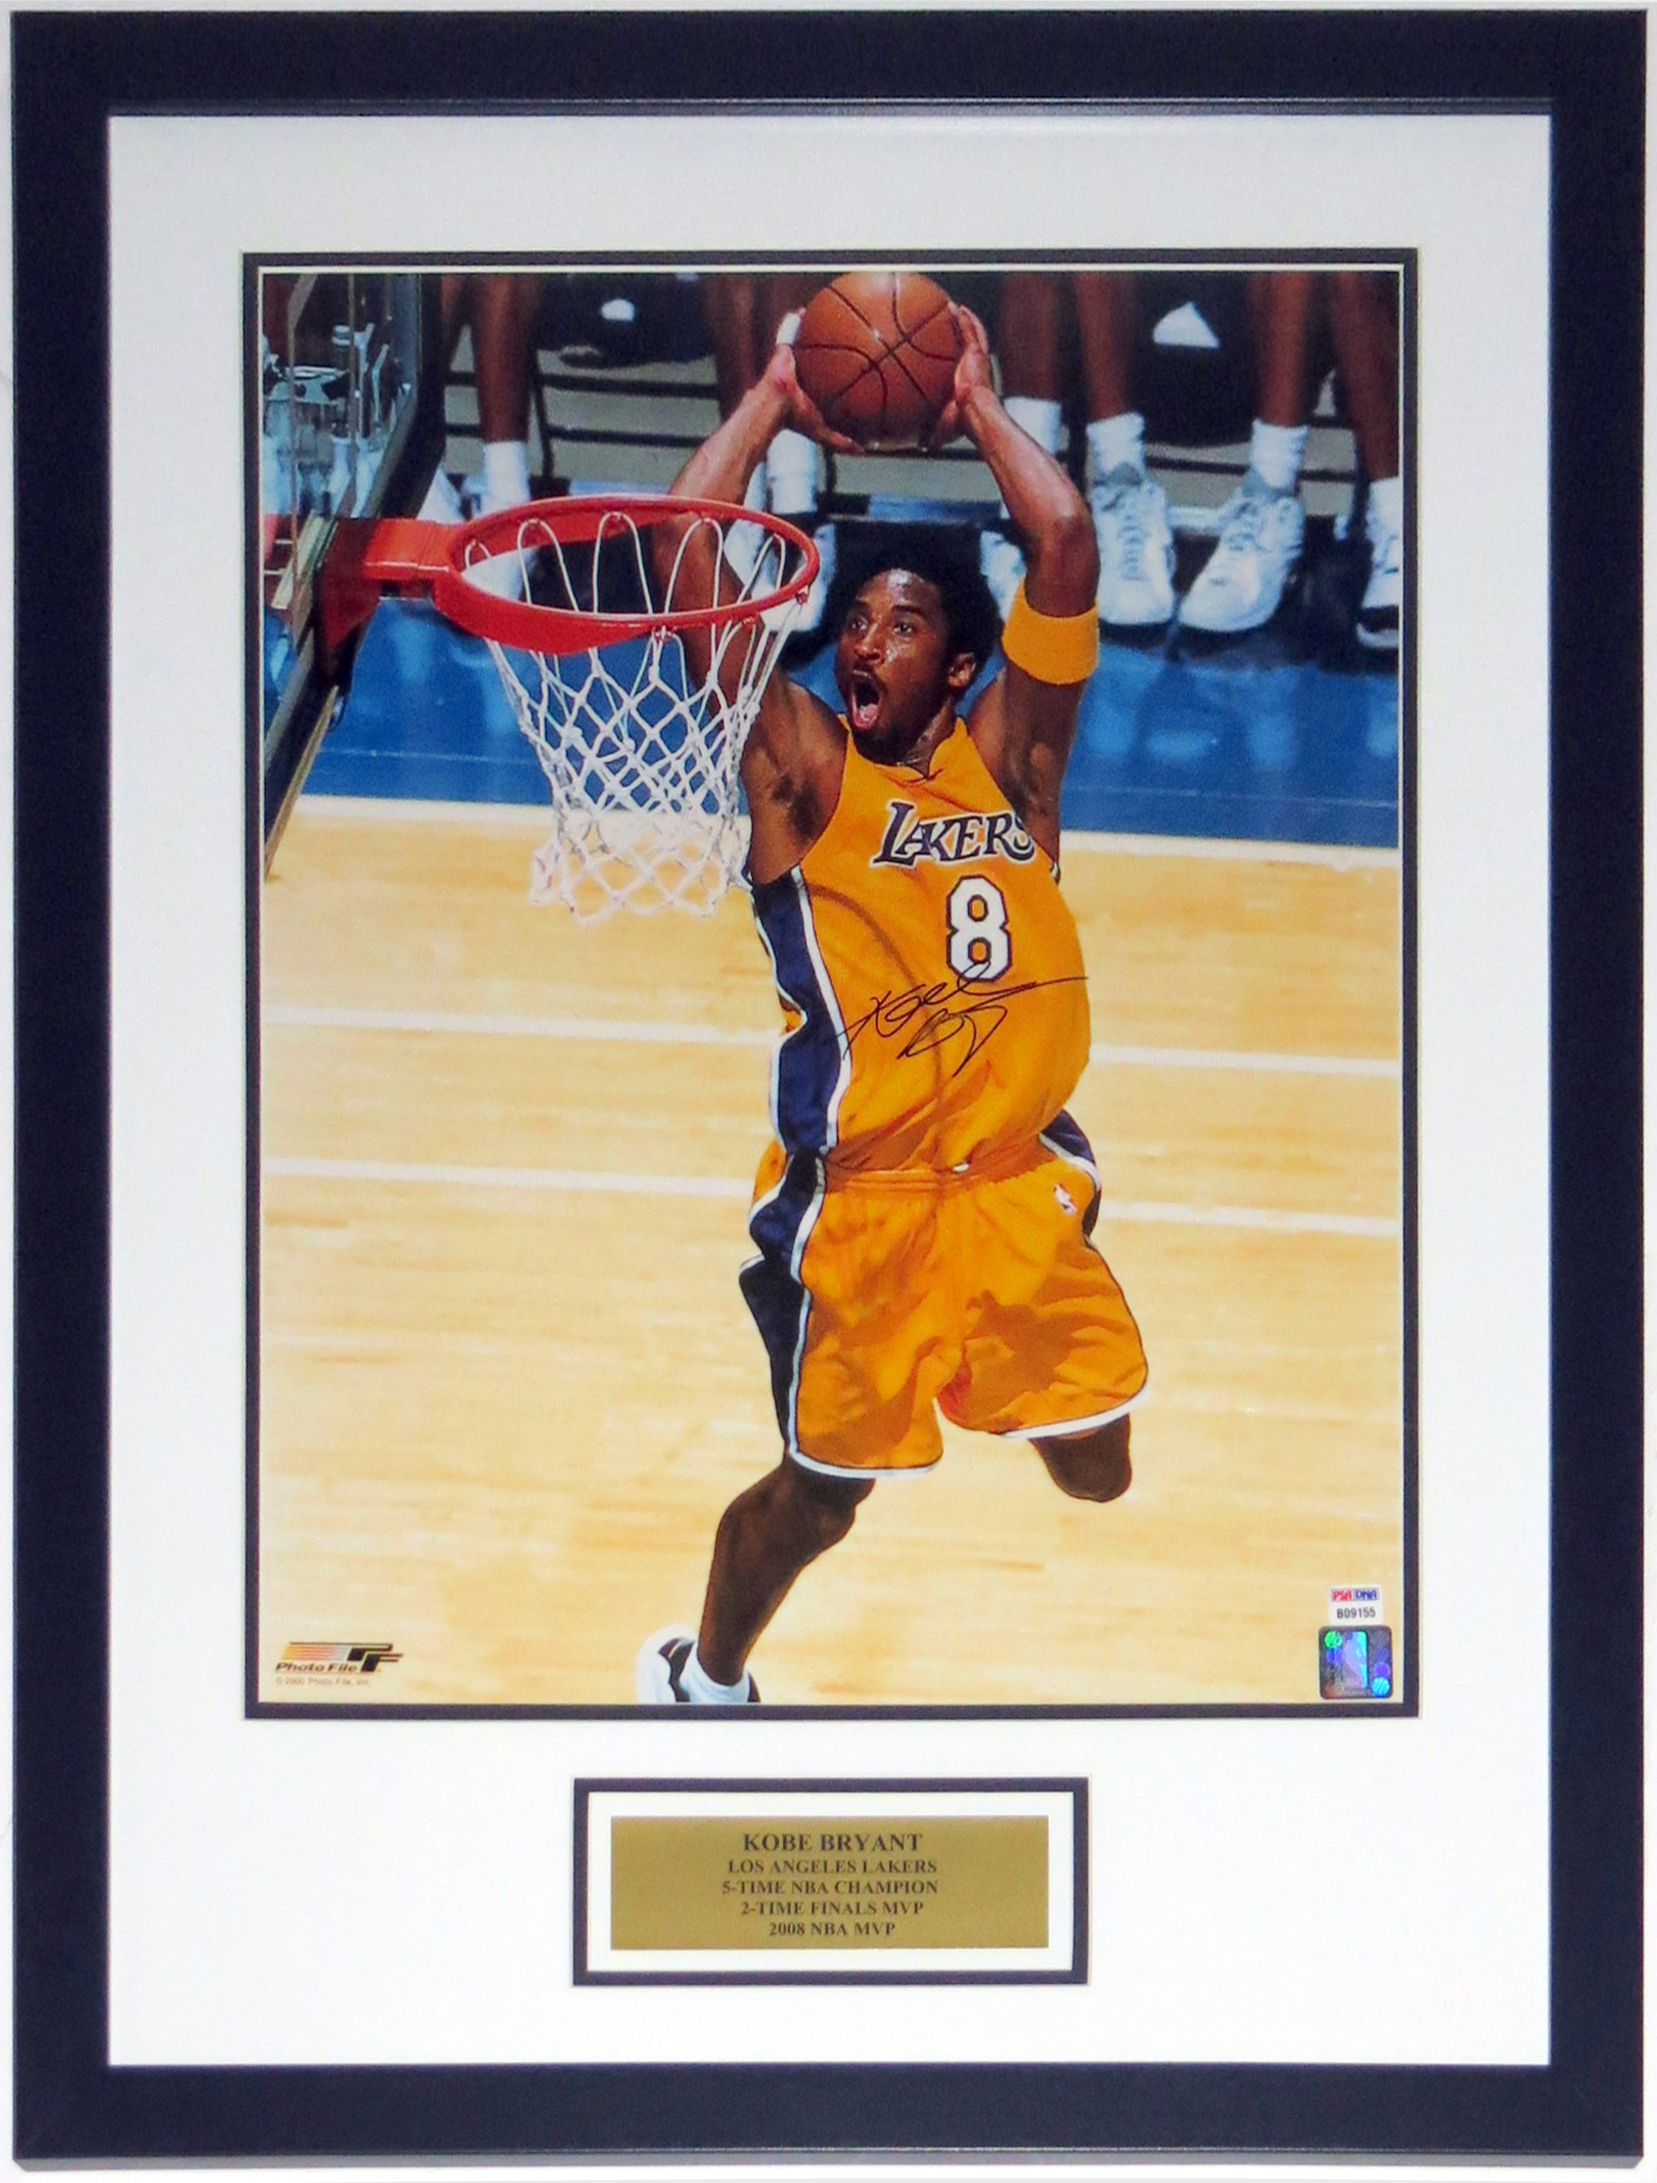 38e8bbd192d Kobe Bryant Signed Los Angeles Lakers 16x20 Photo - PSA DNA COA  Authenticated - Custom Framed